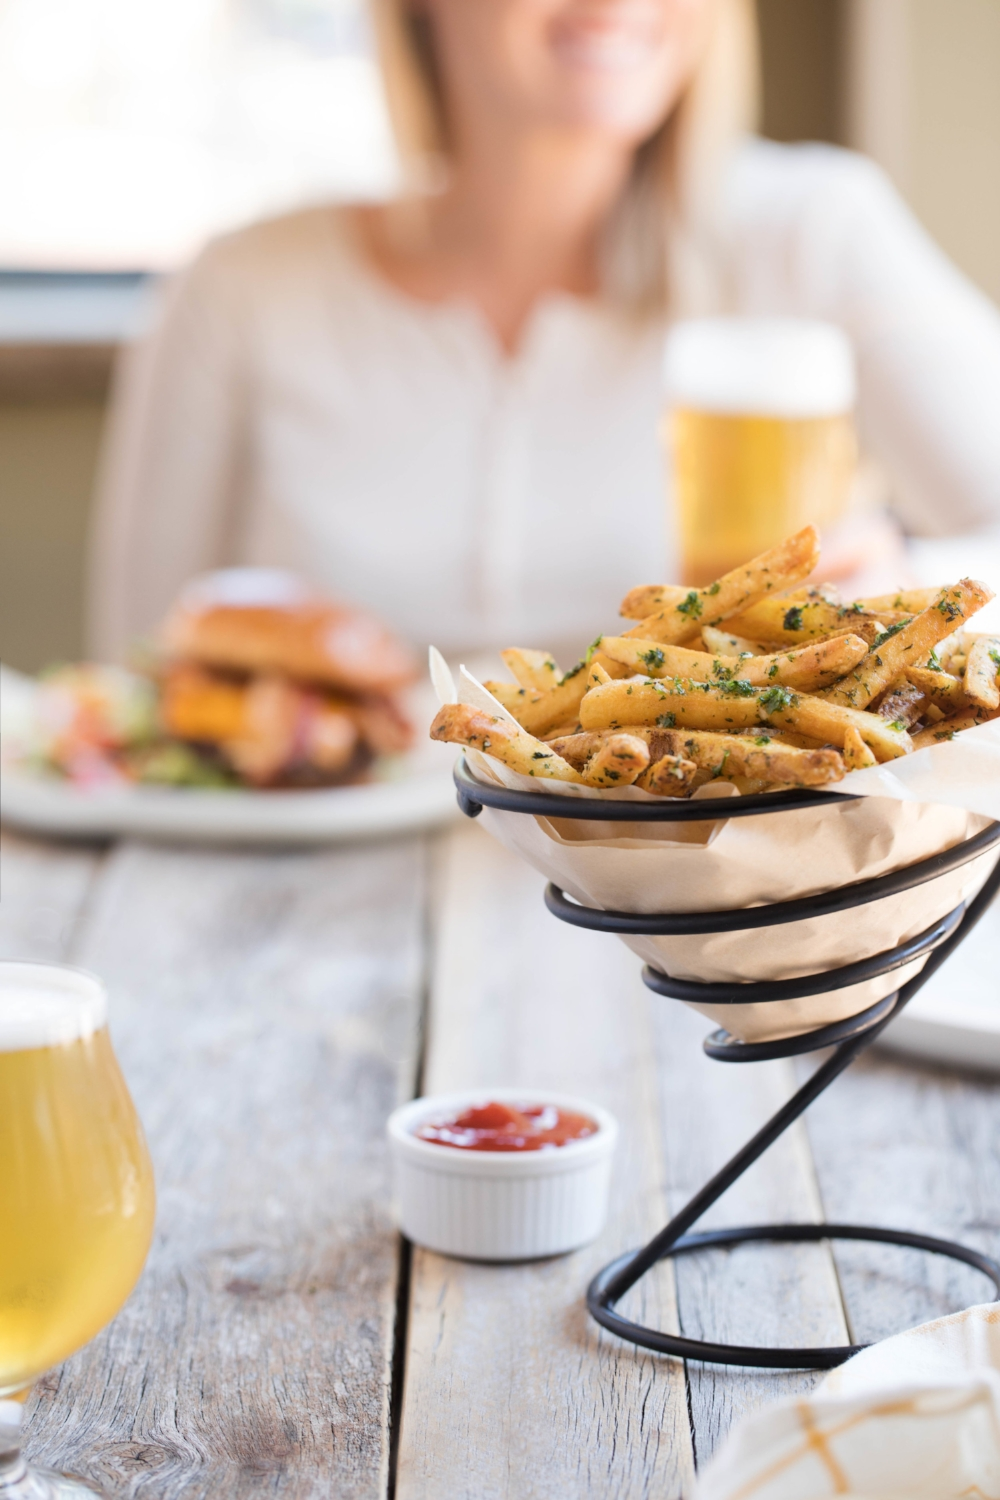 Jimena-Peck-Denver-Food-Photographer-Gordon-Biersch-Brewery-French-Fries-Close-Up